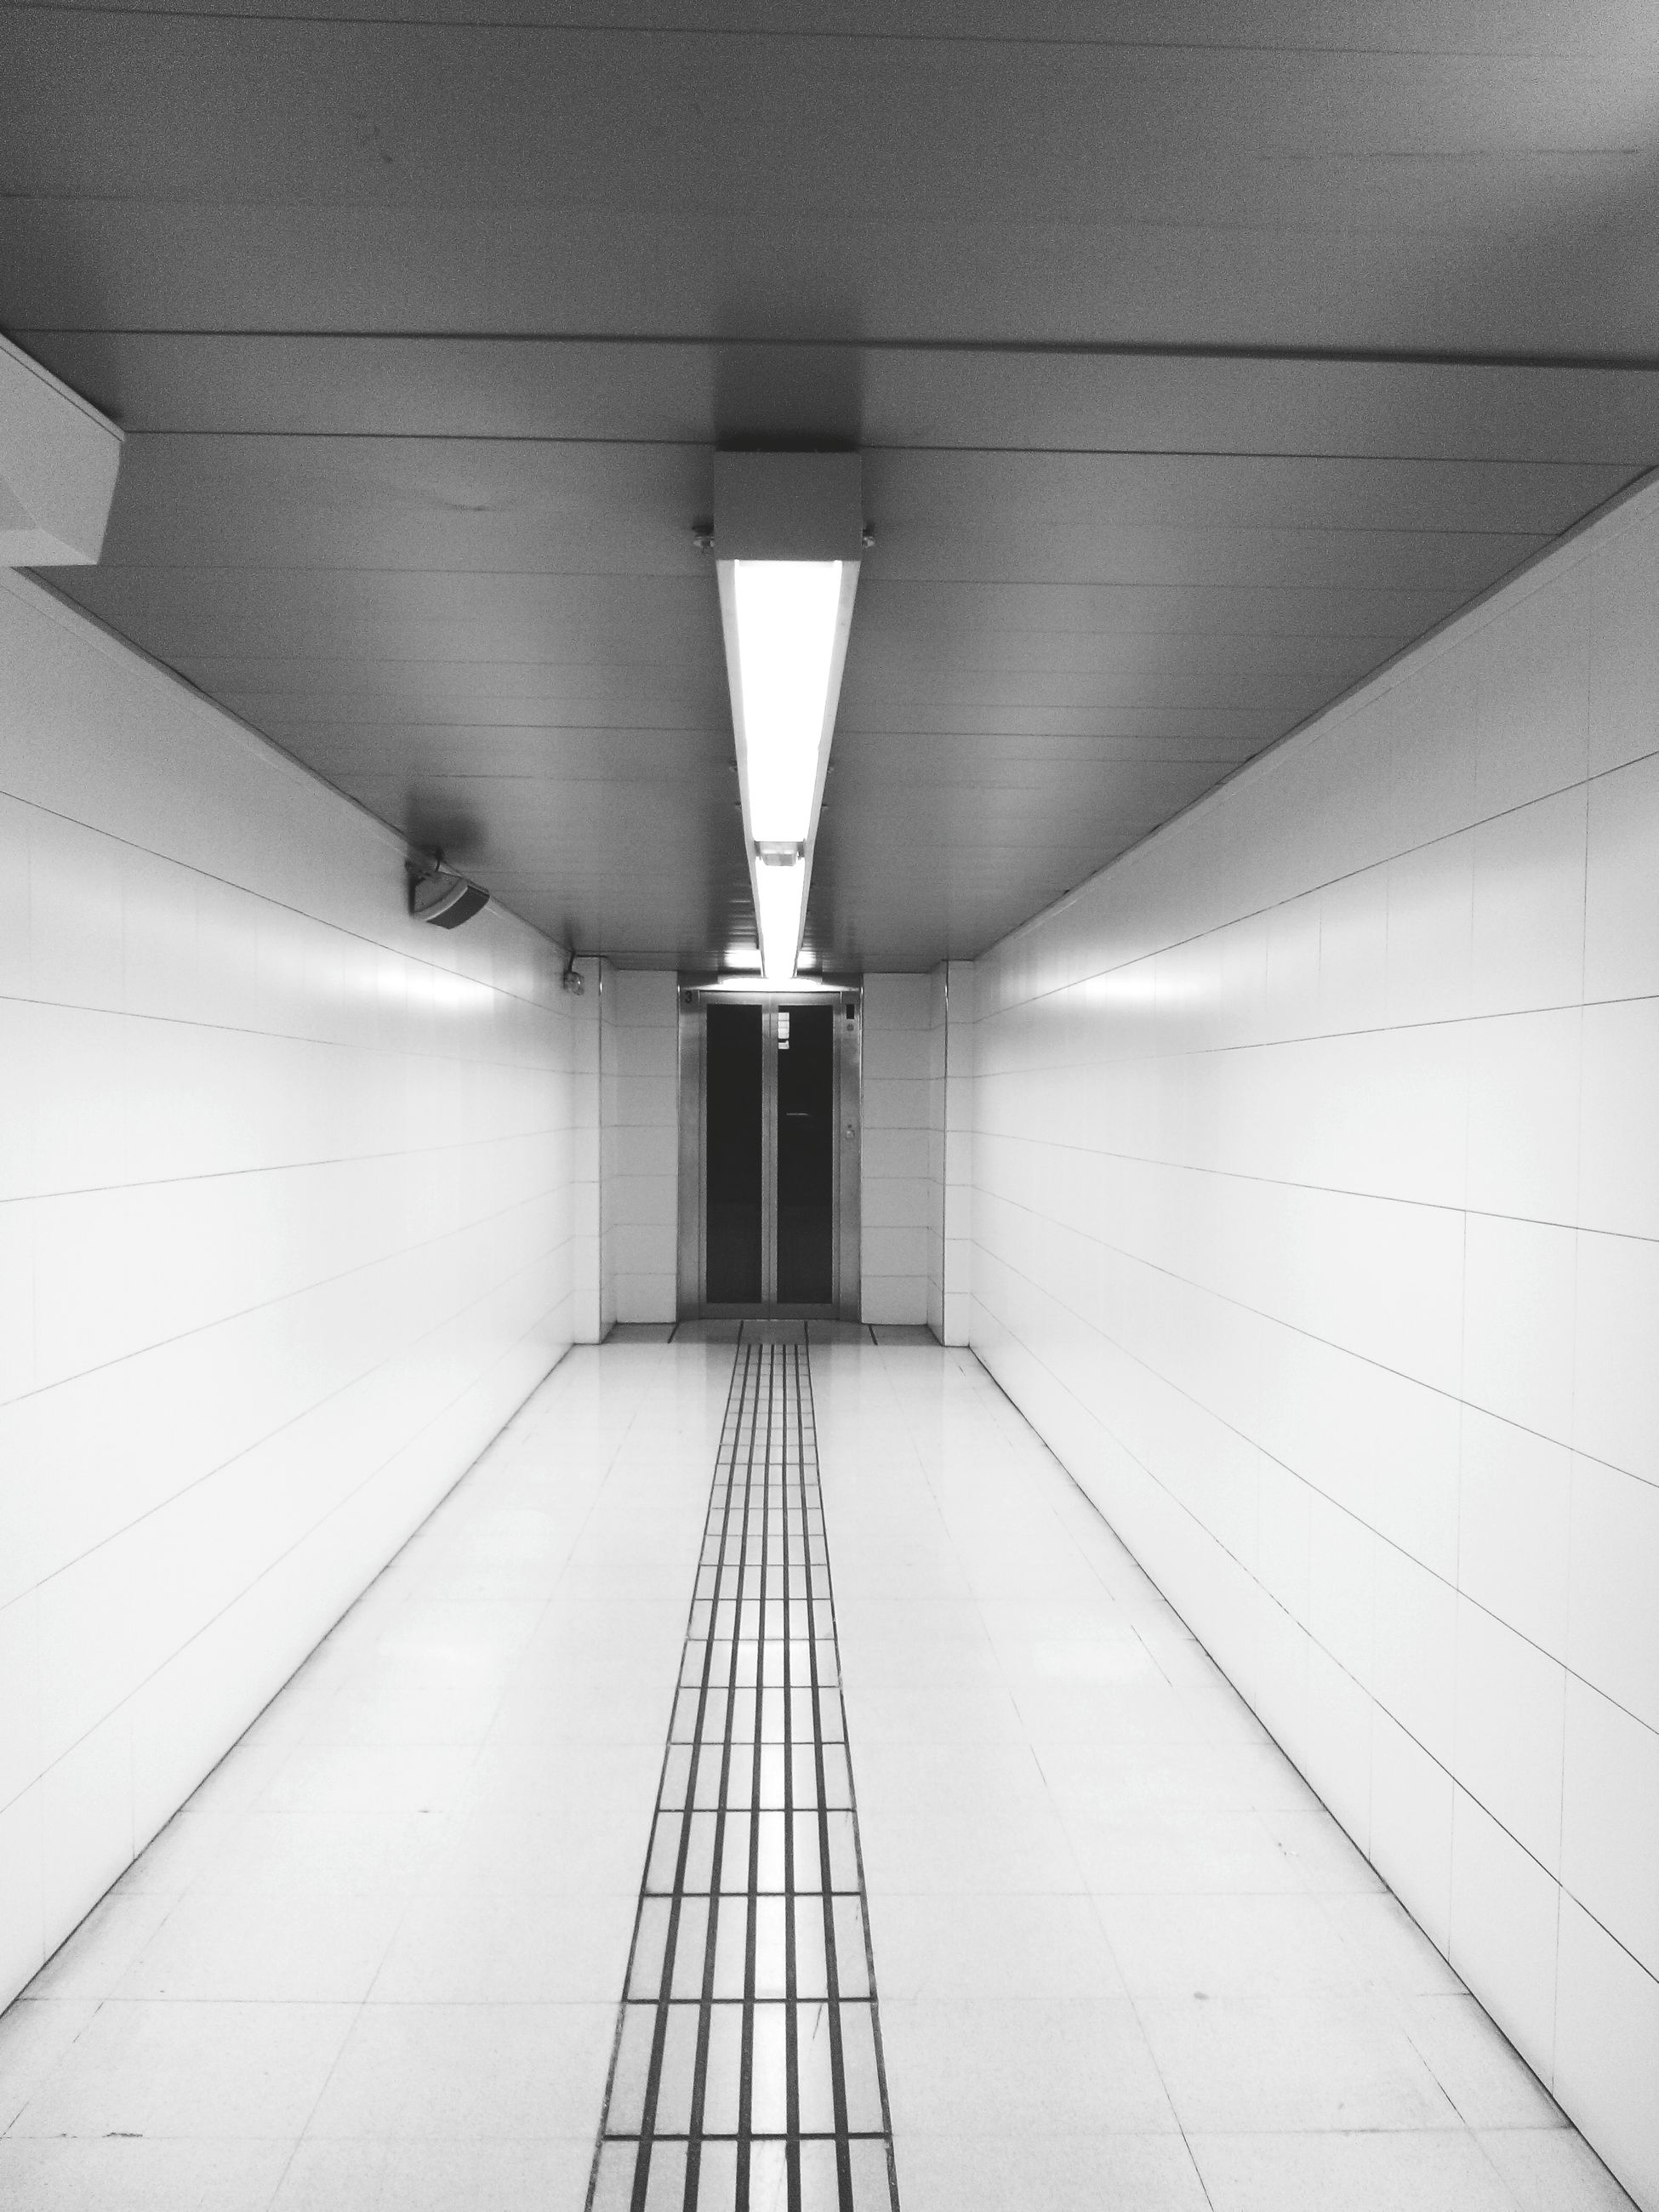 indoors, ceiling, architecture, built structure, the way forward, illuminated, diminishing perspective, corridor, lighting equipment, empty, building, vanishing point, modern, flooring, tiled floor, wall - building feature, interior, architectural feature, low angle view, no people